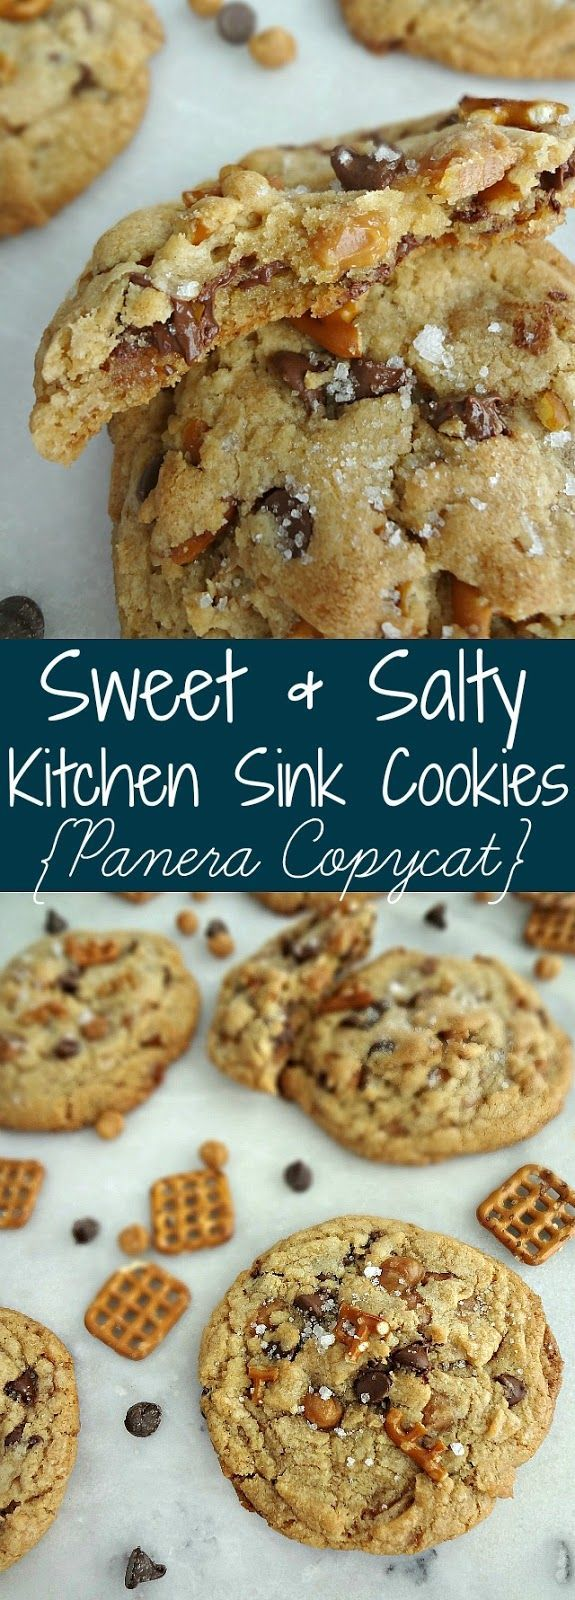 Sweet & Salty Kitchen Sink Cookies {Panera Copycat}